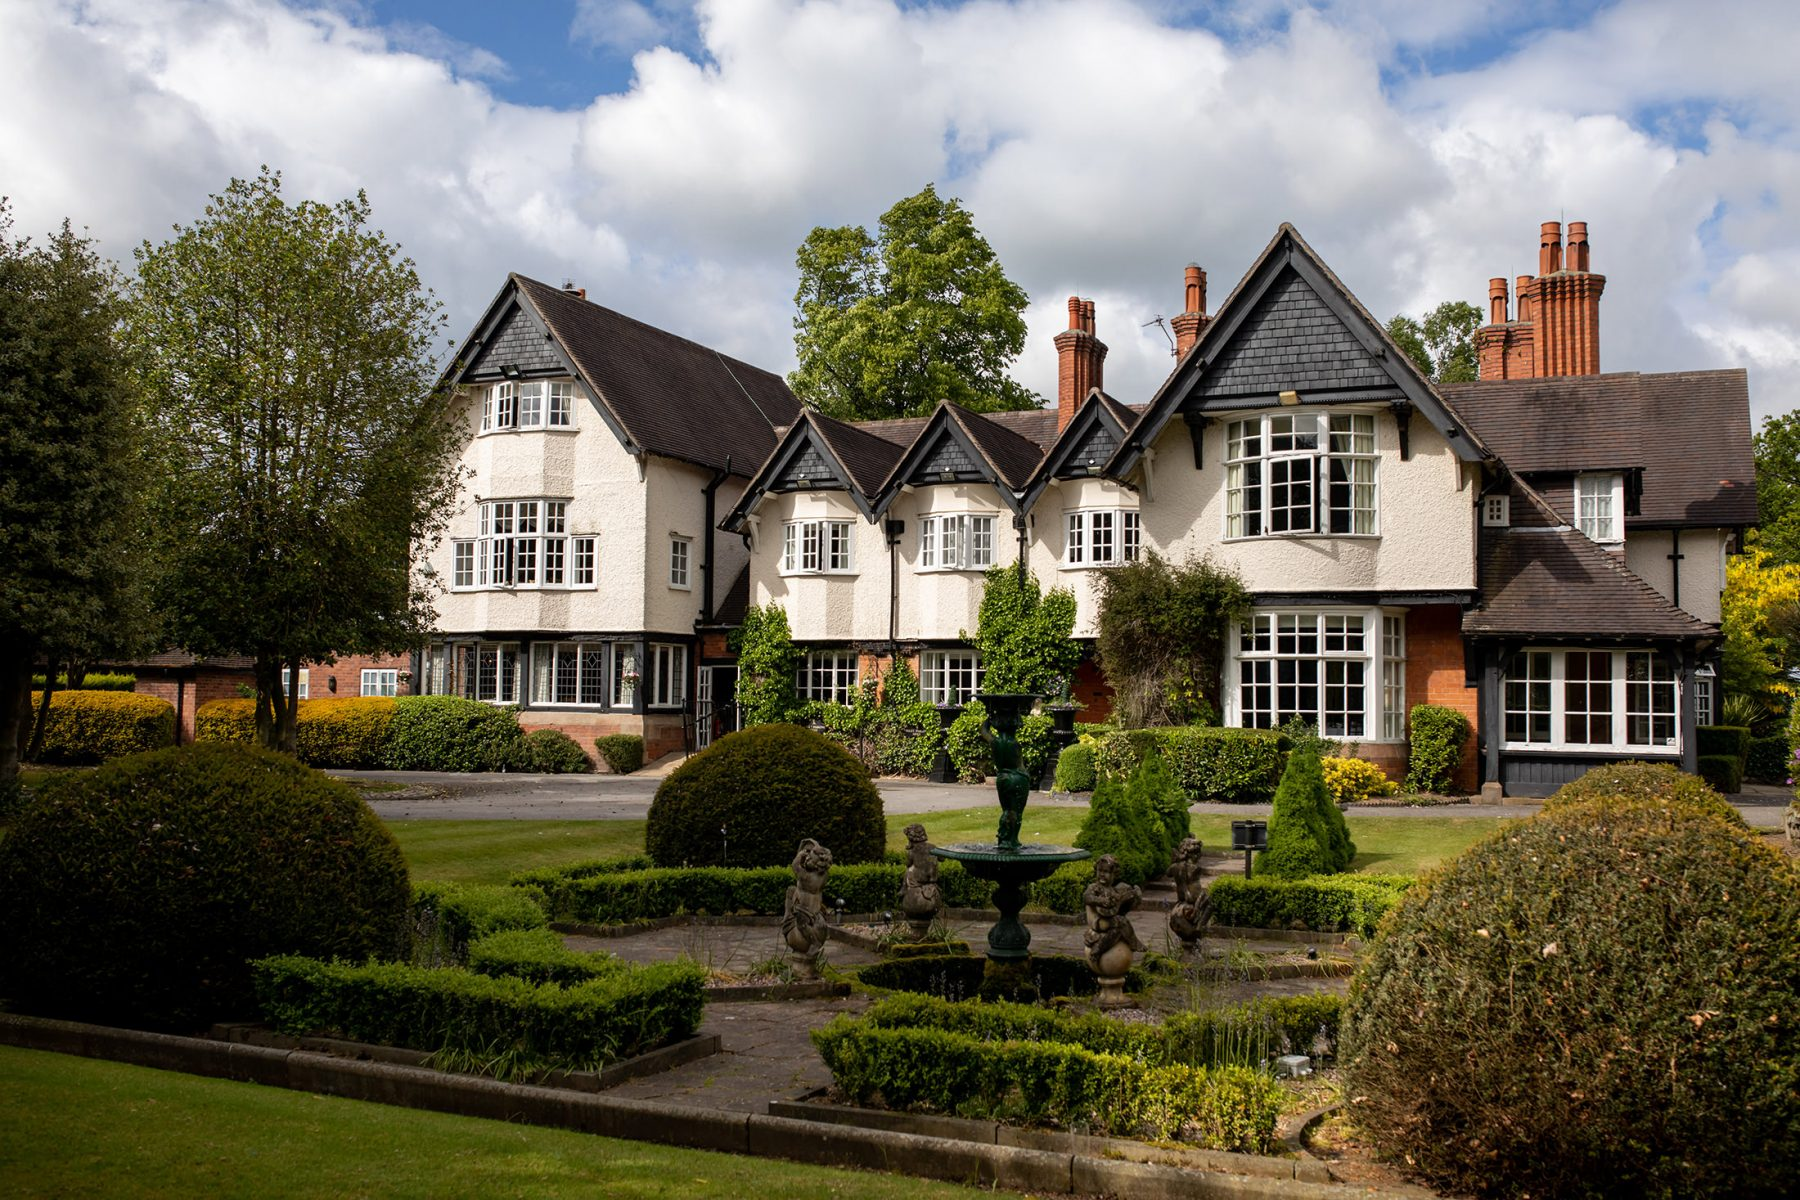 Knutsford Wedding Venues - A view of the Mere Court hotel